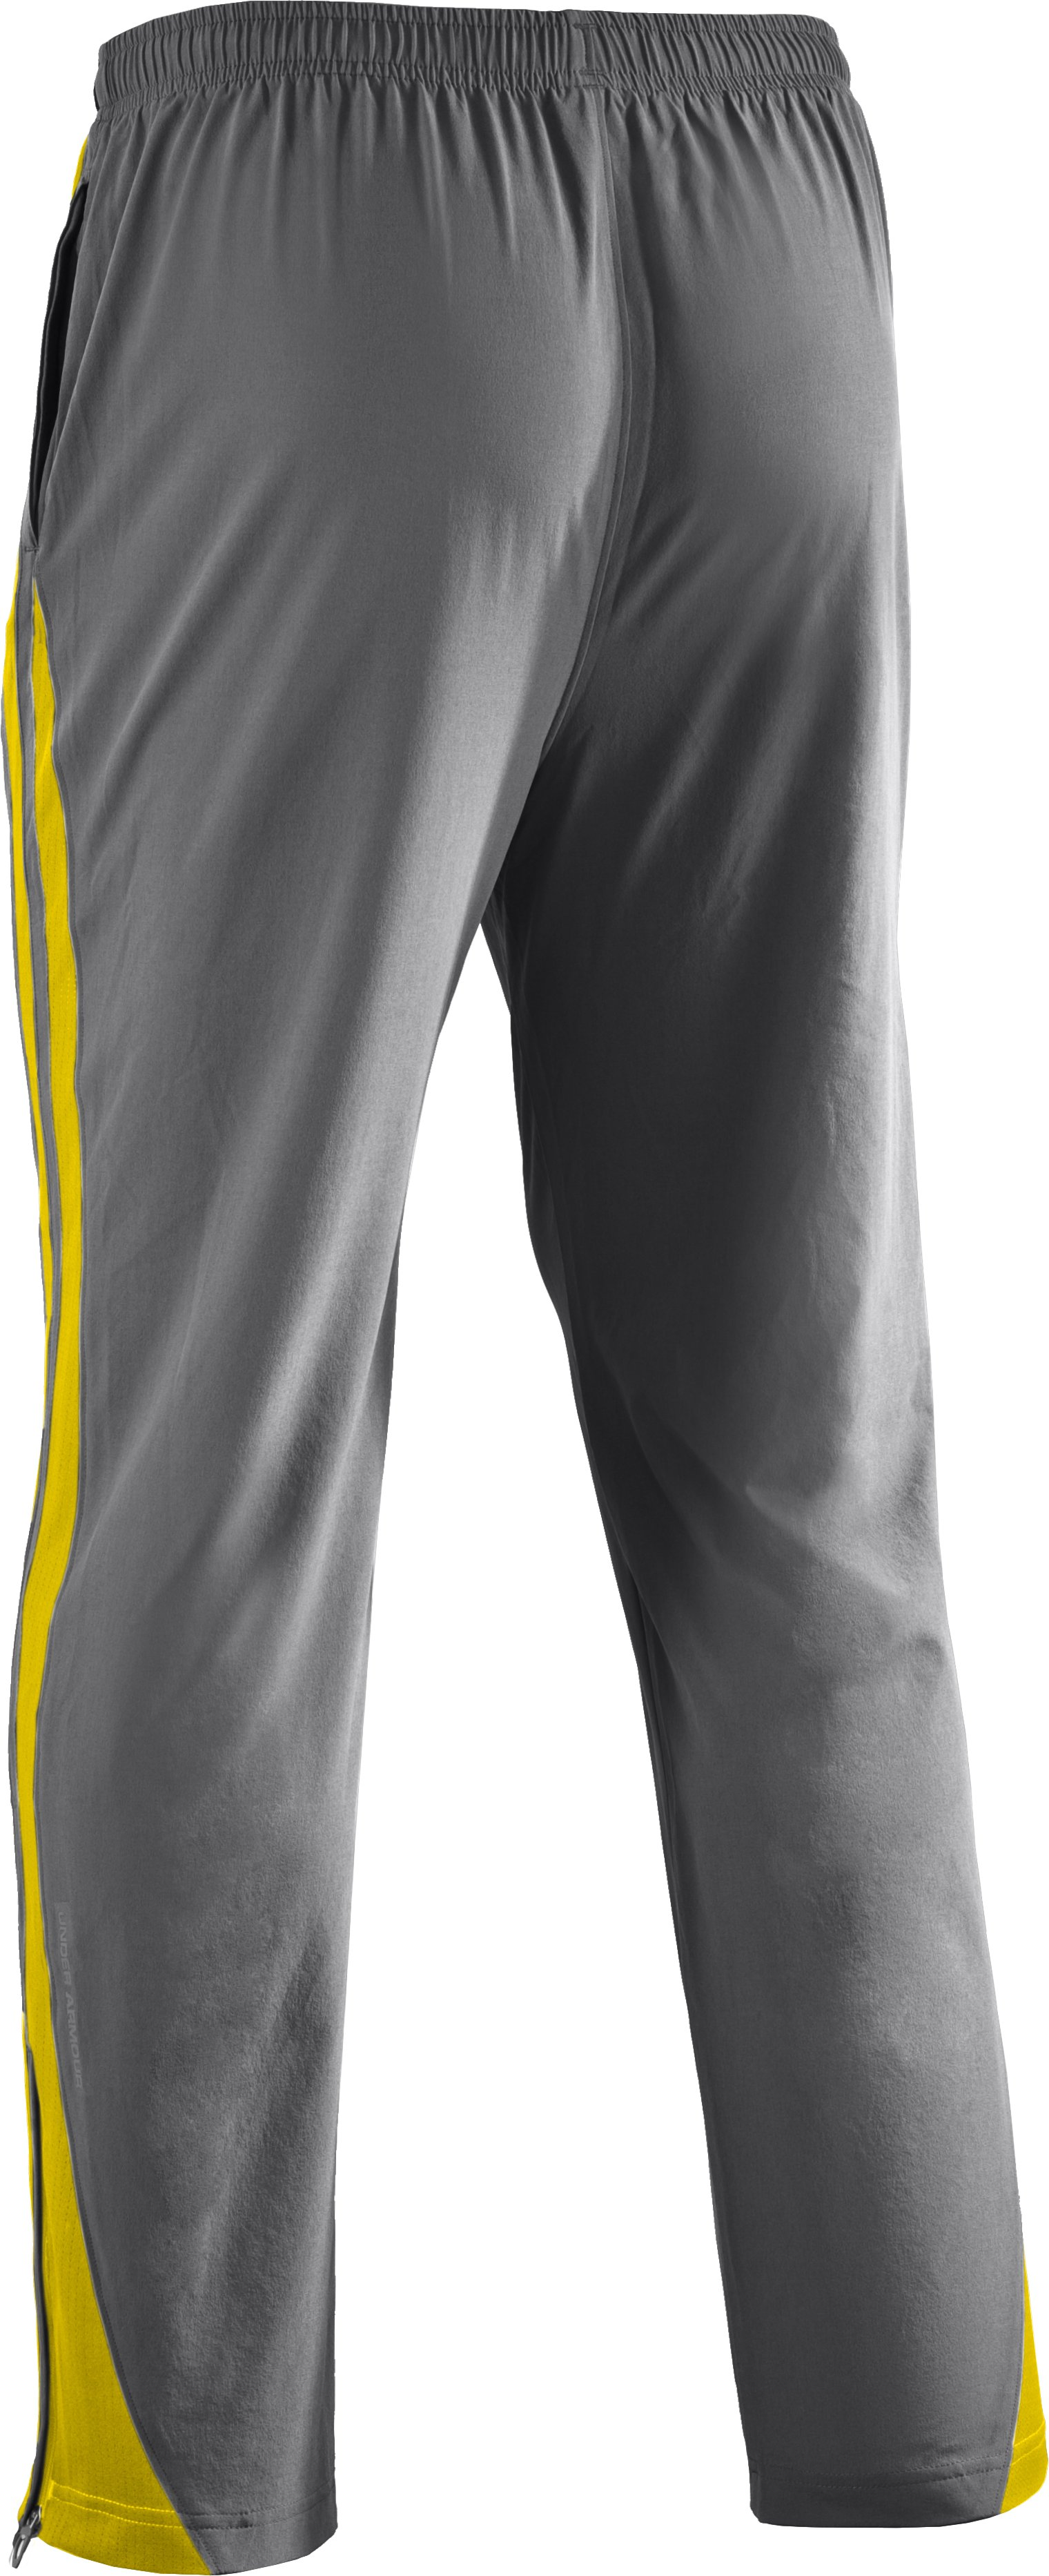 Men's Transit Woven Pants, Graphite